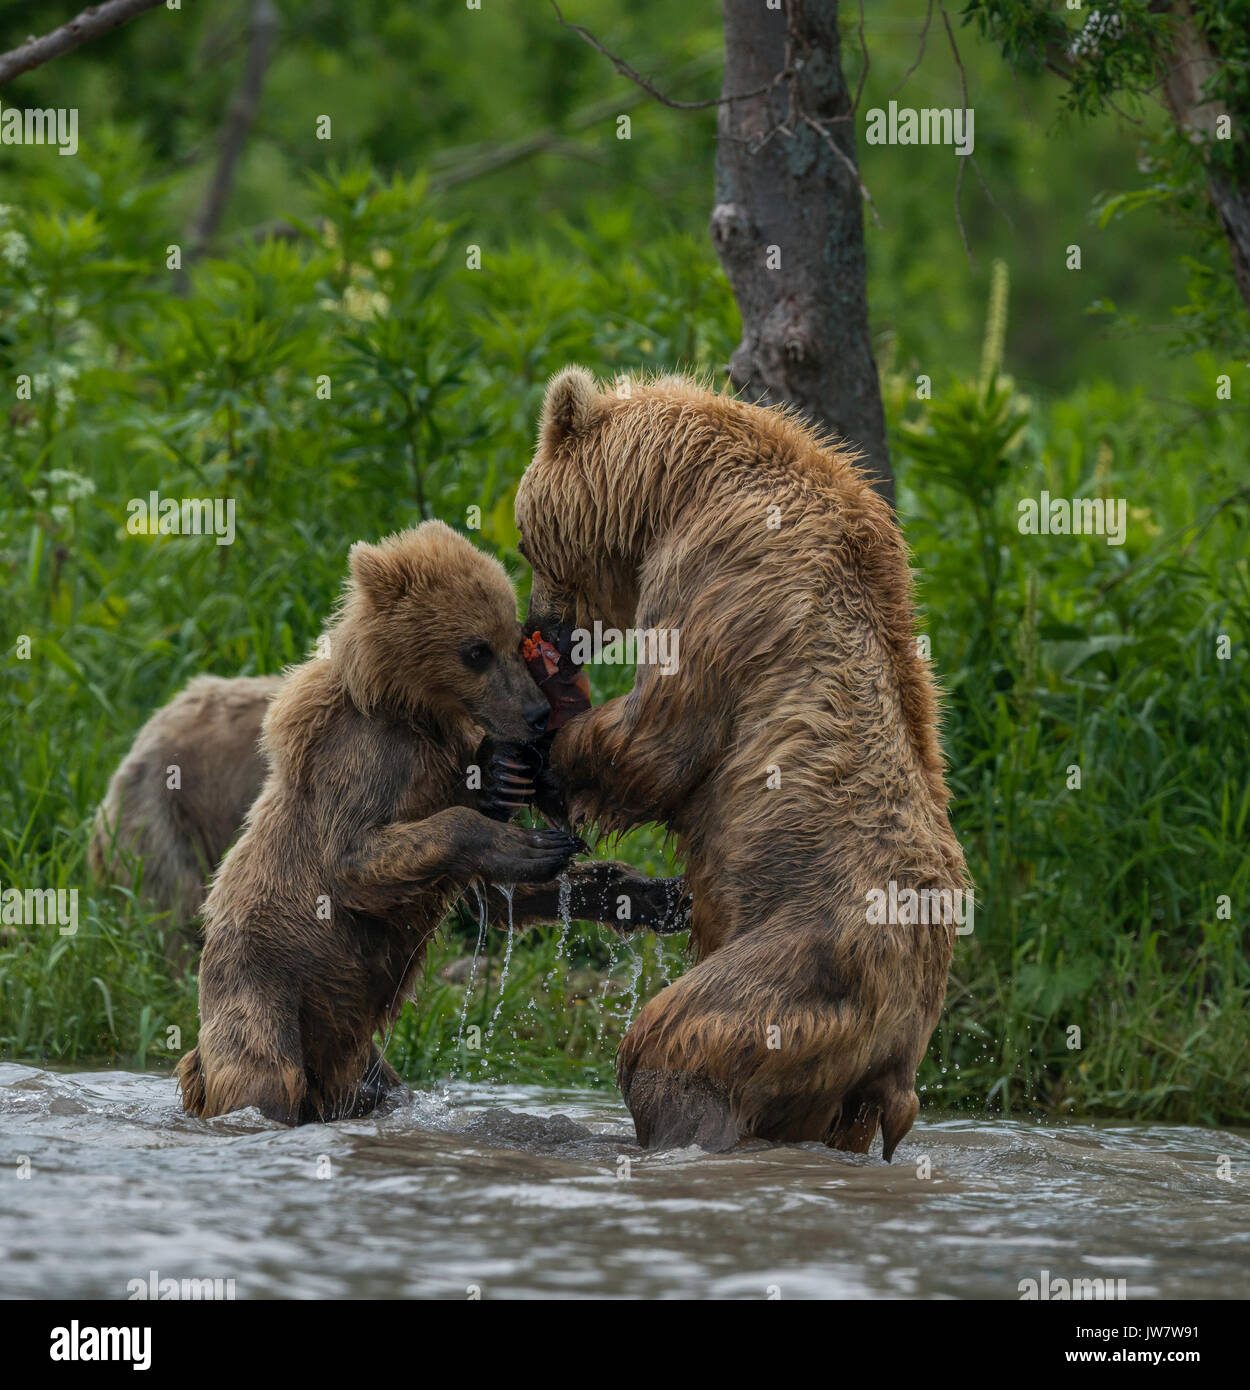 Brown bear cub trying to wrestle sockeye salmon from it's mother. Image was taken in the river systems draining into Kuril Lake, Kamchatka, Russia. - Stock Image